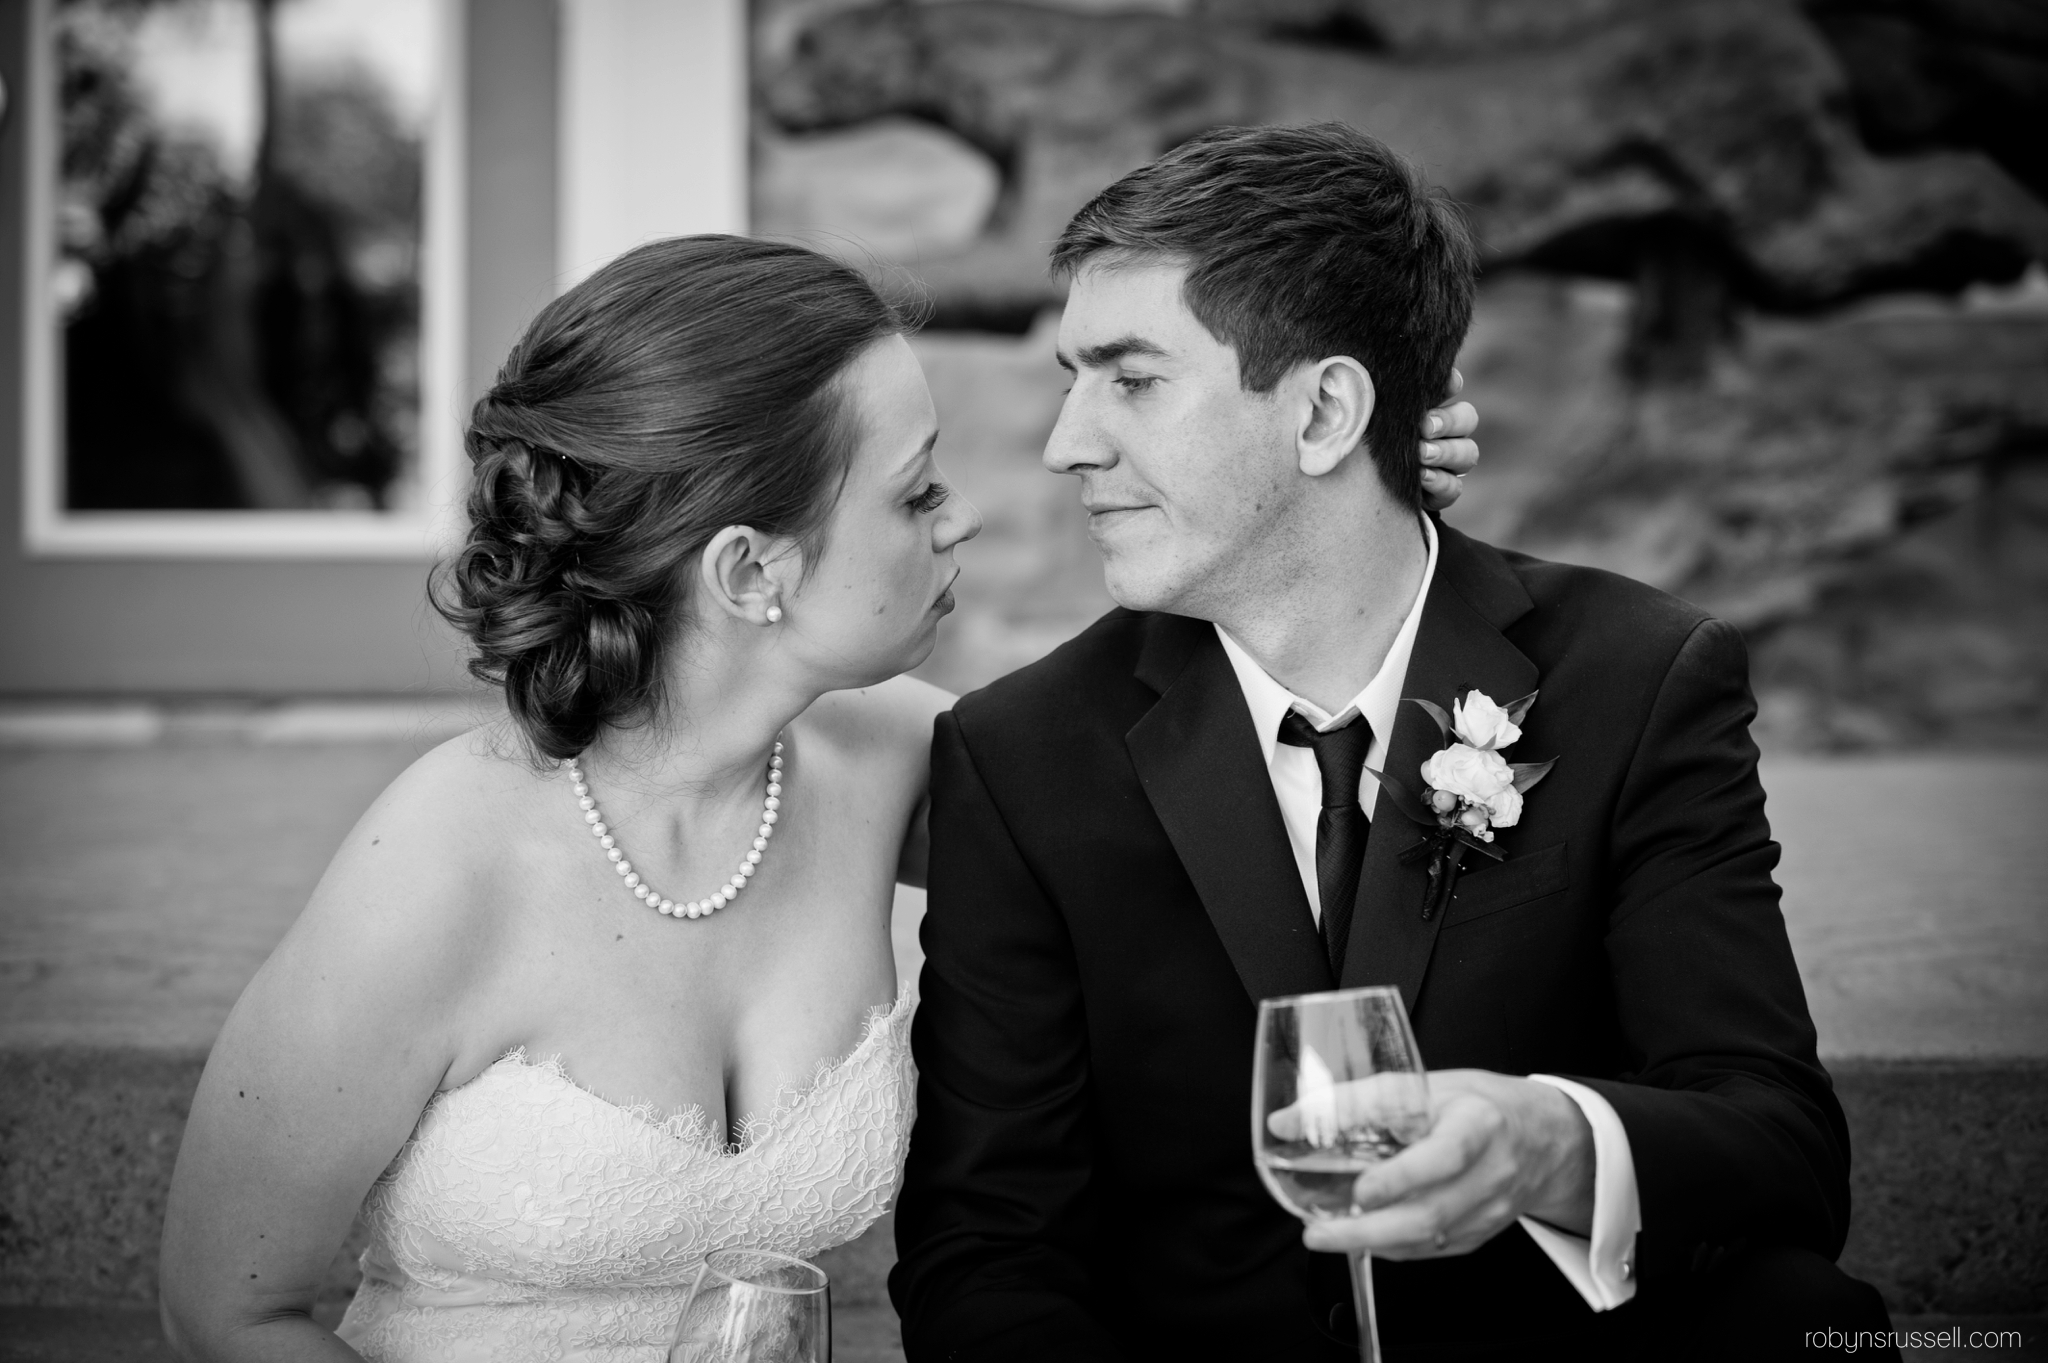 32-bride-and-groom-drinking-champagne.jpg